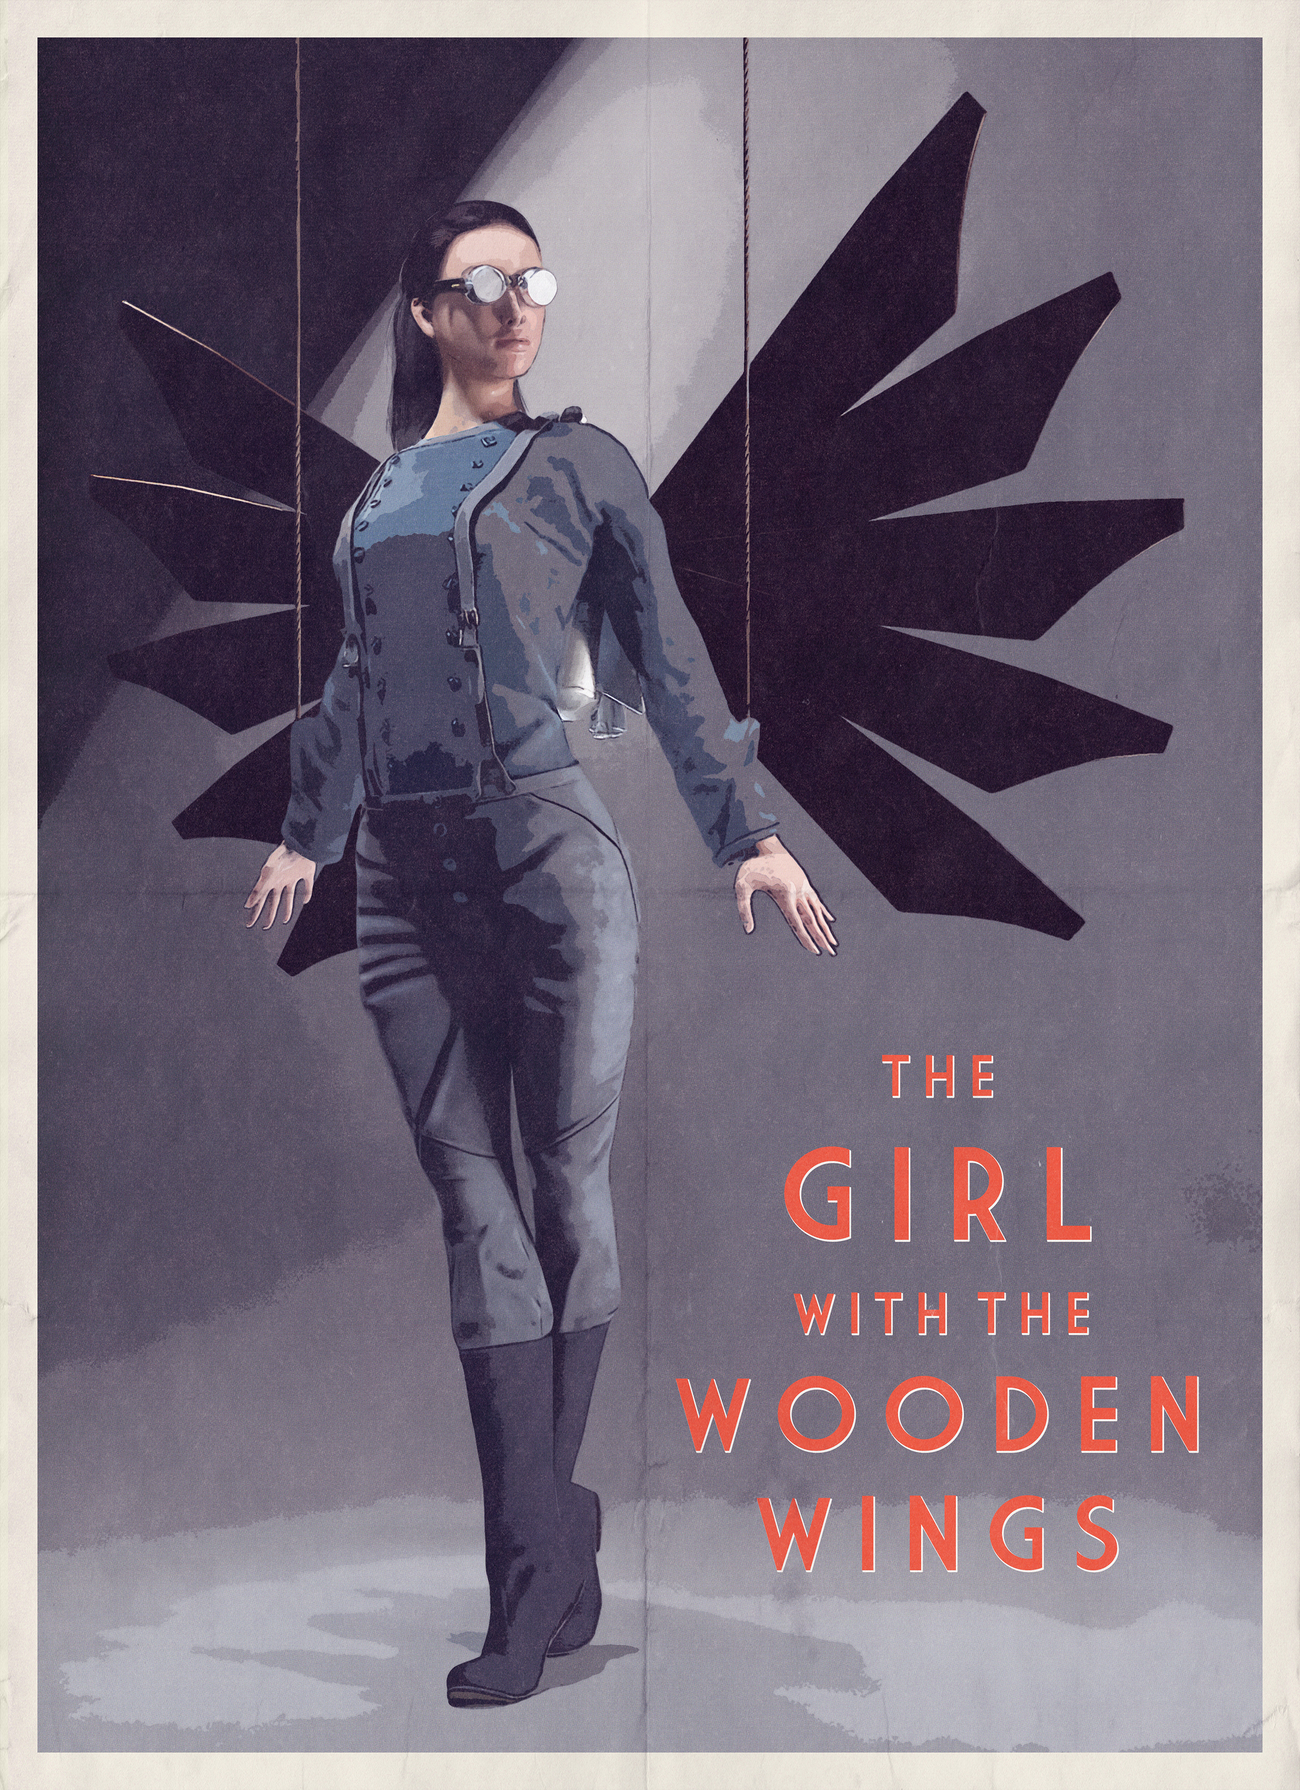 The Girl with the wooden wings